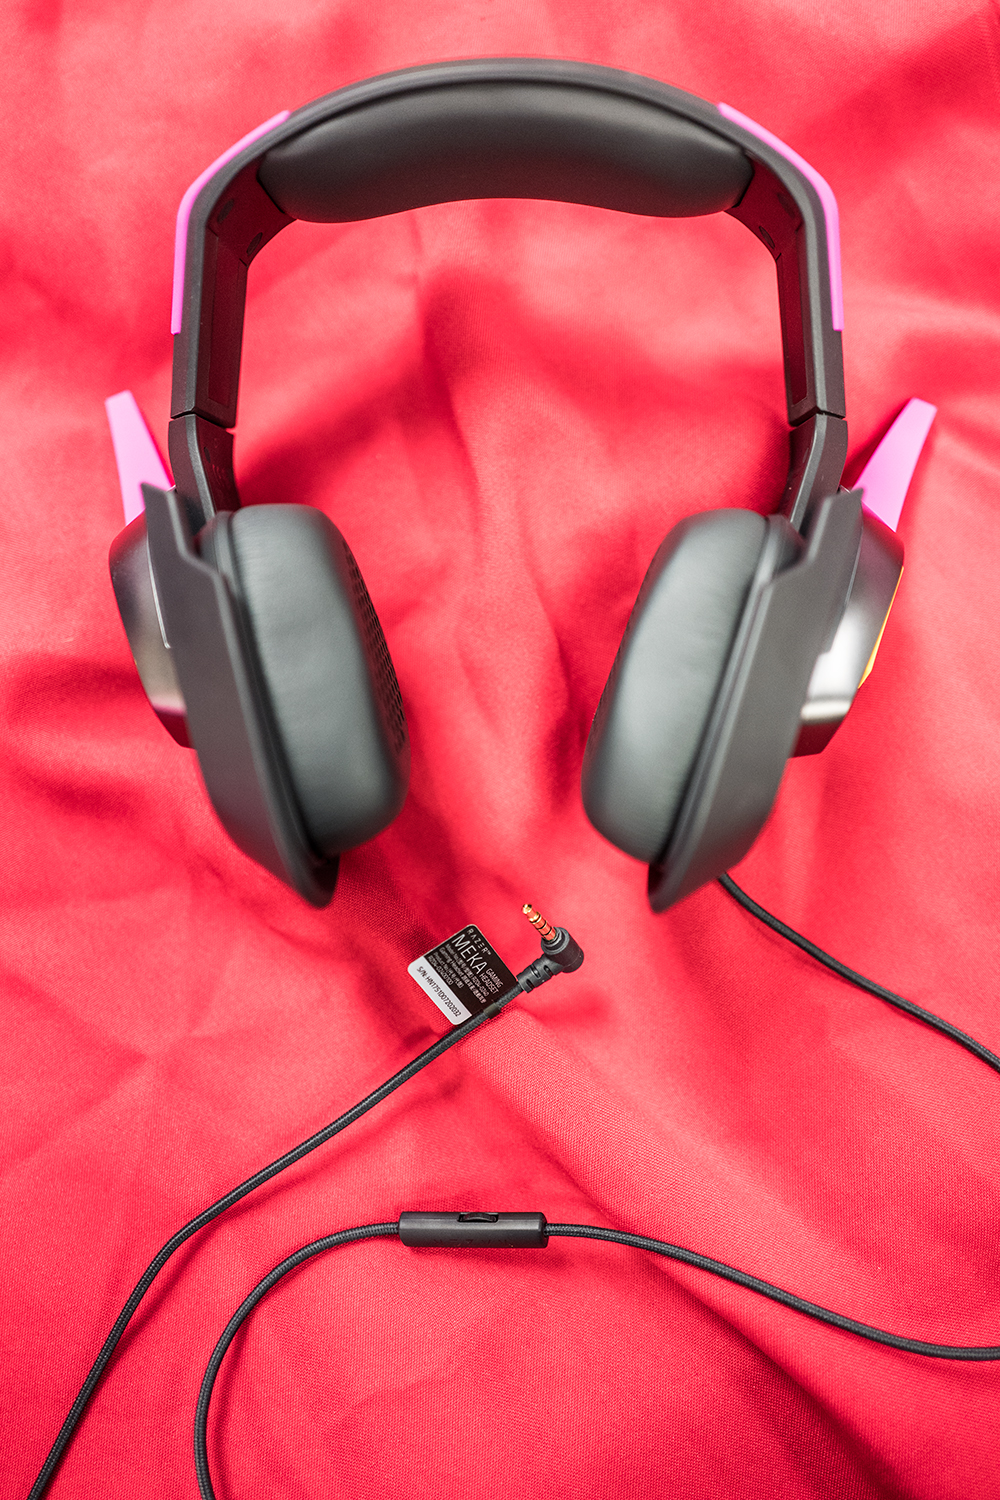 Full view of the headset